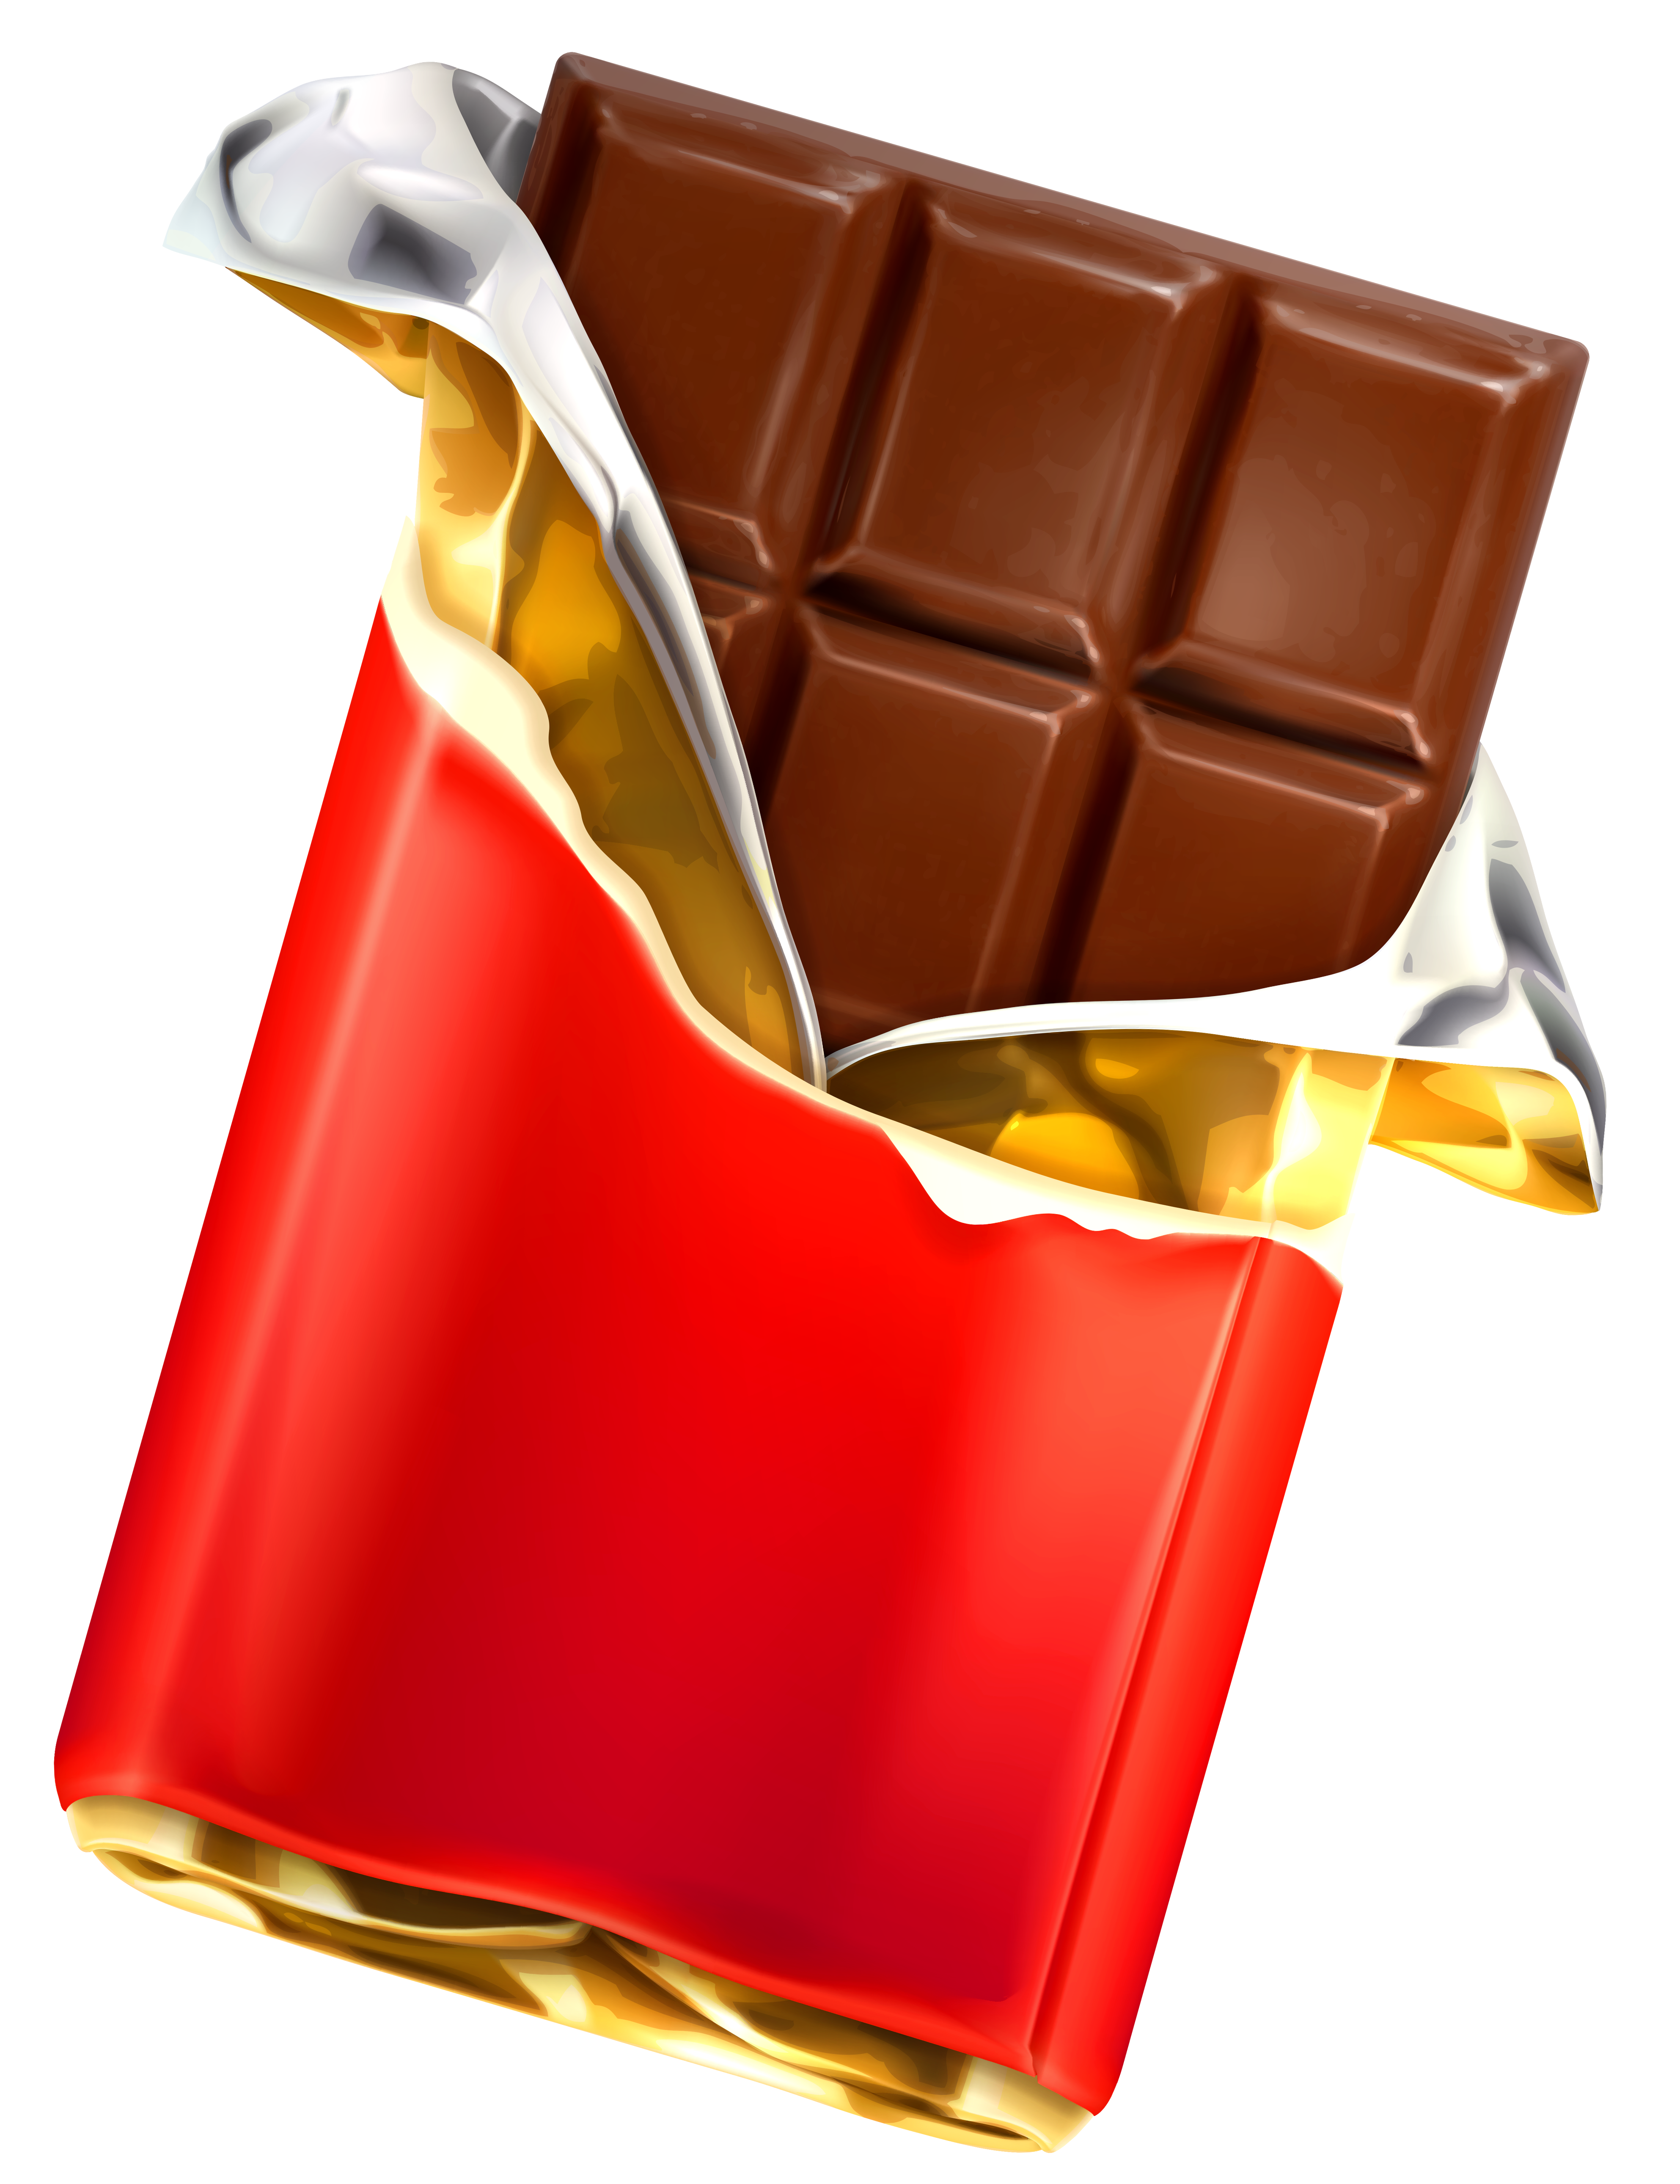 Chocolate clipart image